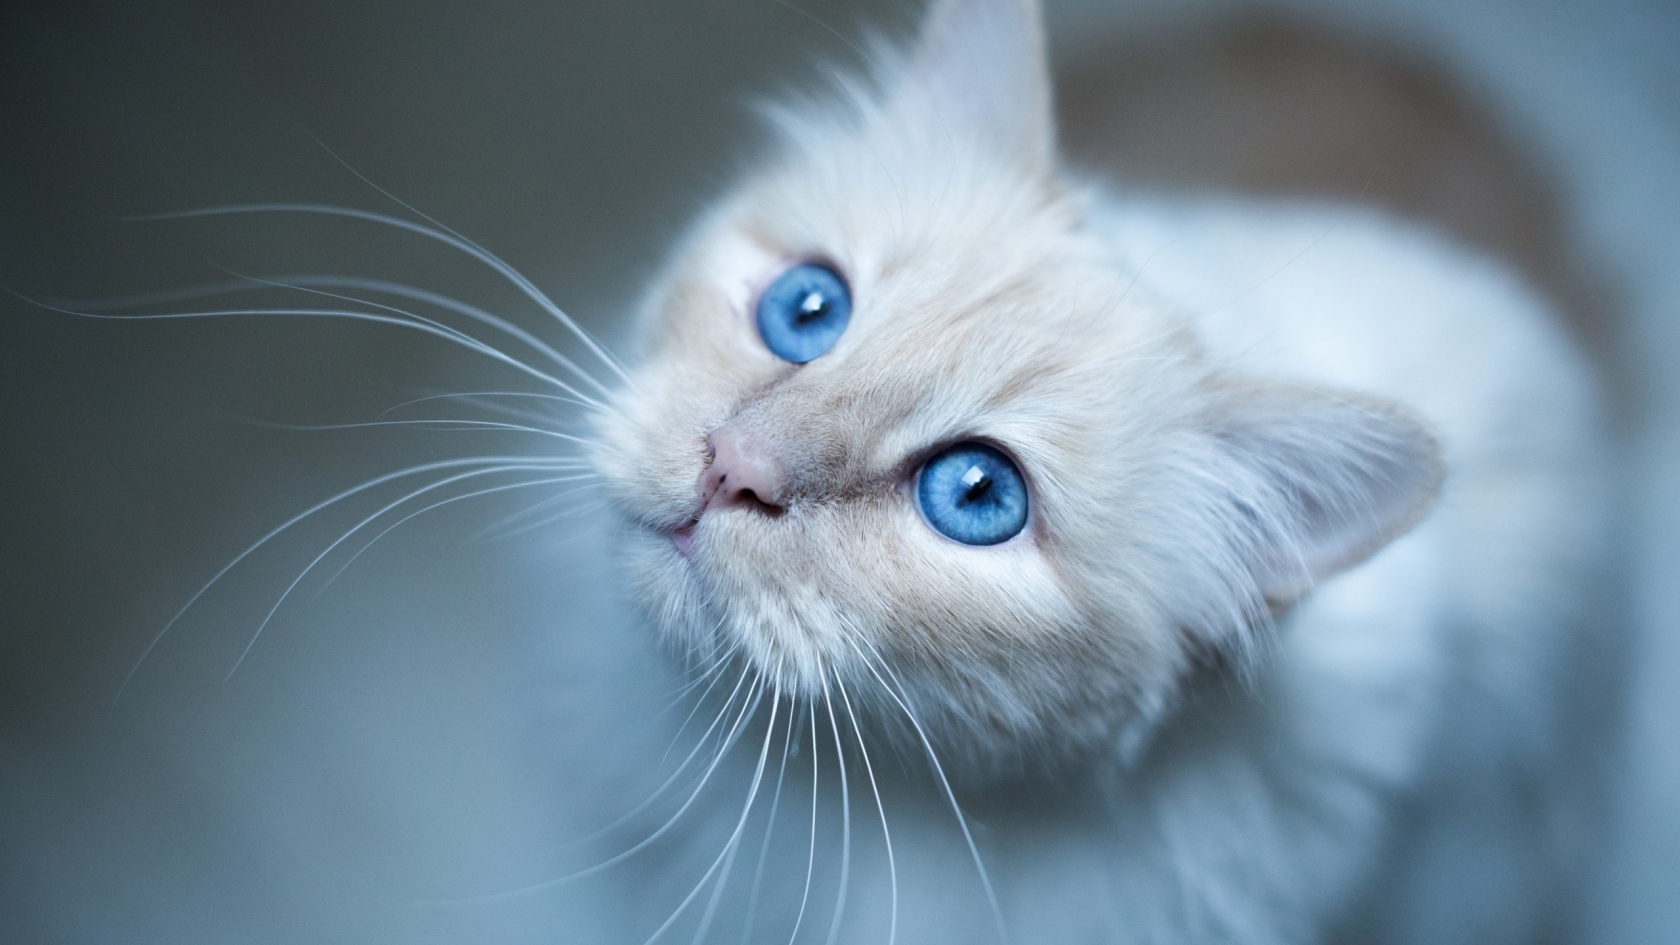 Kitty Blue Eyes for 1680 x 945 HDTV resolution